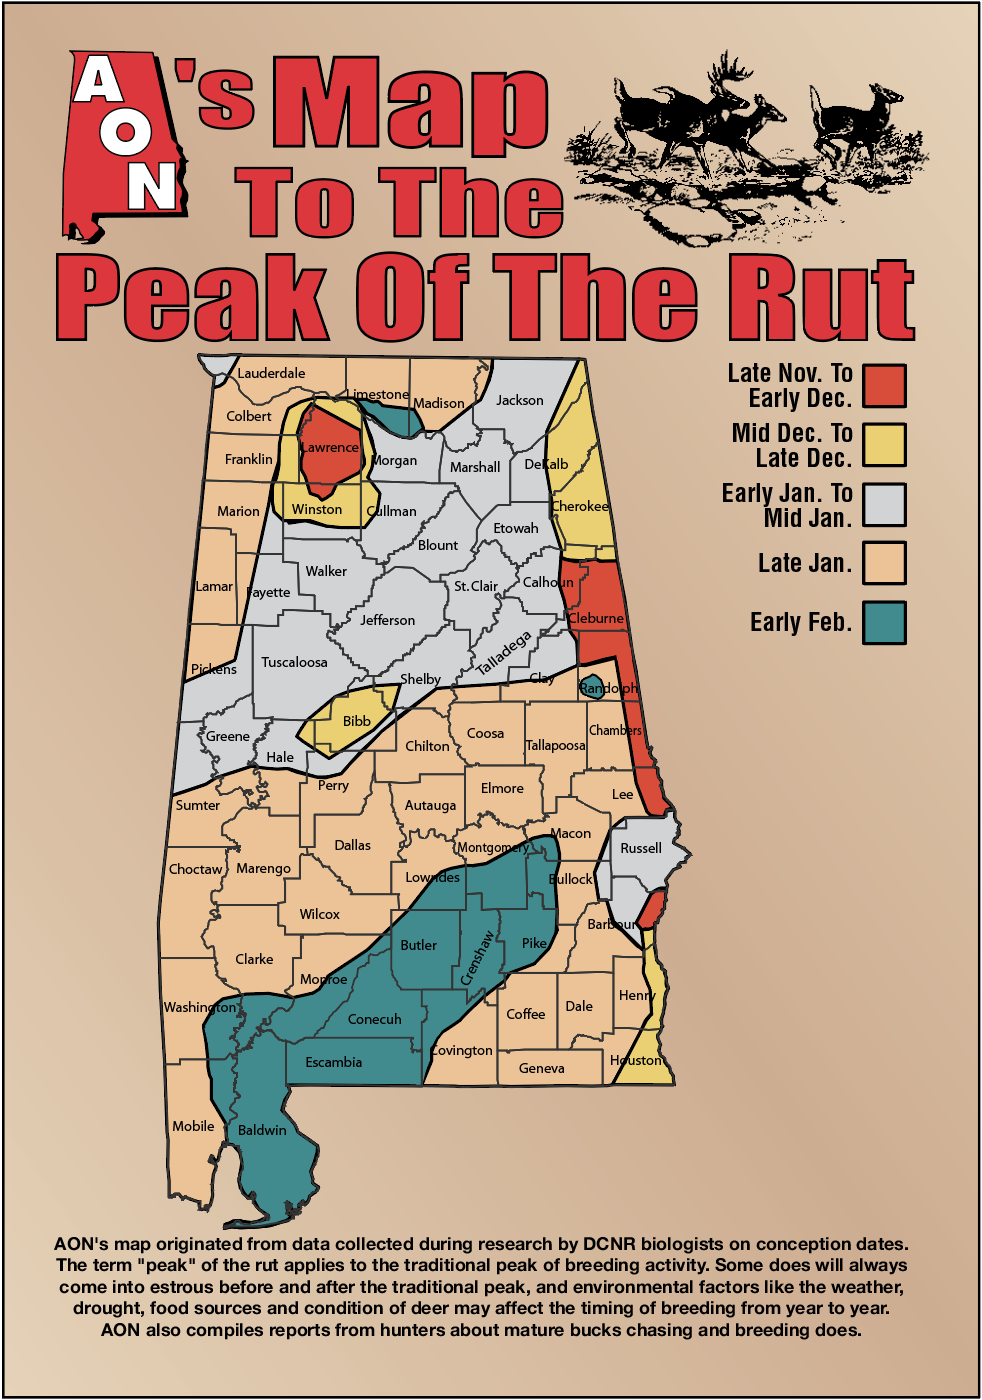 Aon's Map To The Peak Of The Rut with regard to Peak Rut Predictions For 2020